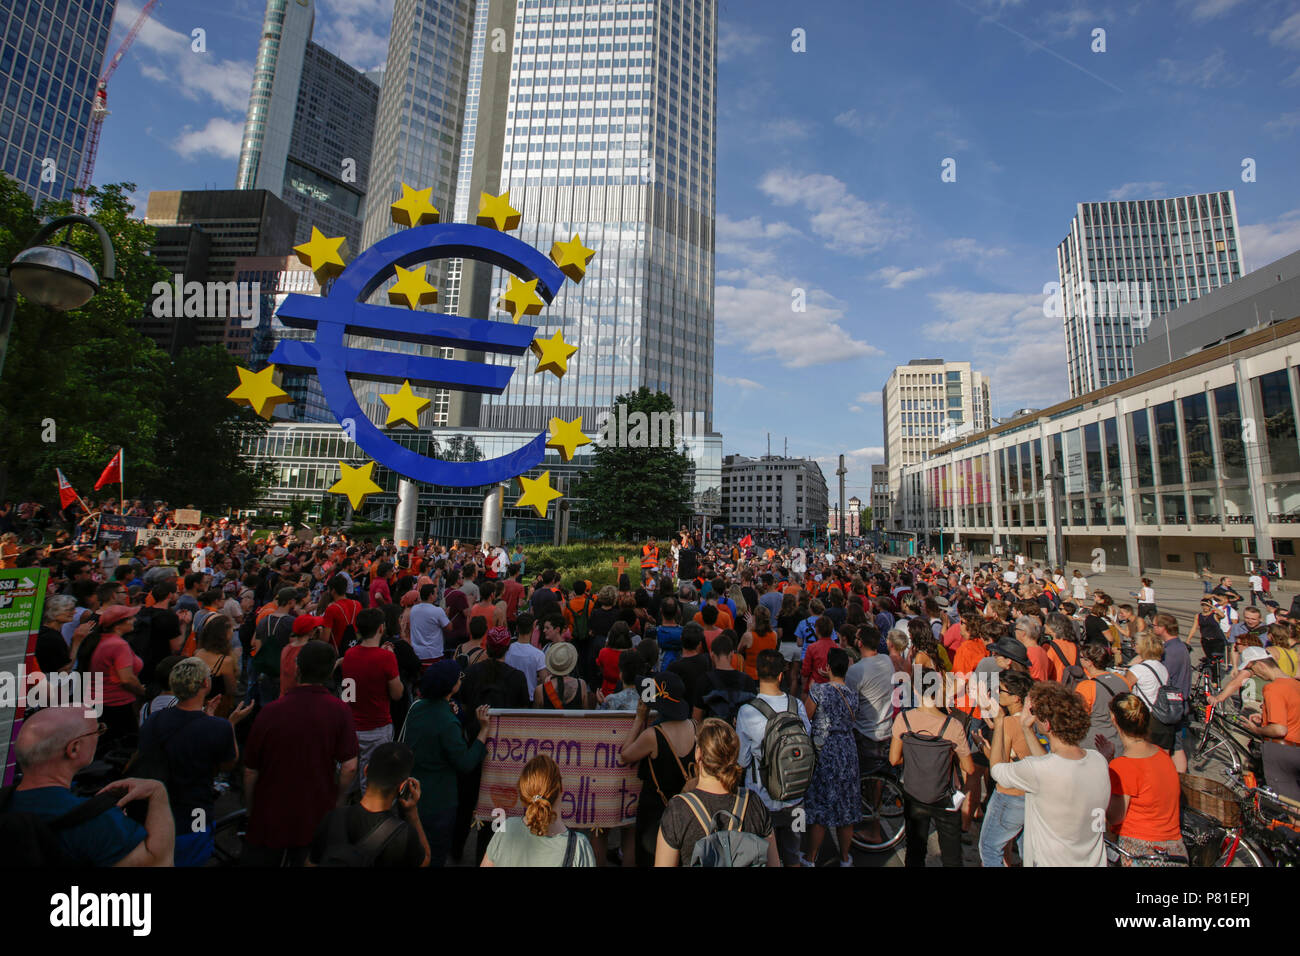 Frankfurt, Germany. 07th July, 2018. Protesters have assembled at the large Euro sign outside the former seat of the ECB. Around 800 protesters marched through Frankfurt to protest against the politics of the German government and the EU of closed borders and the prevention of sea rescue operations of NGOs, by grounding their ships in Malta, that causes refugees to drown in the Mediterranean. They called for the Mayor of Frankfurt to declare Frankfurt a safe haven city for refugees from the Mediterranean. The protest was part of the German wide Seebrucke (Sea bridge) protest that saw thousands Stock Photo